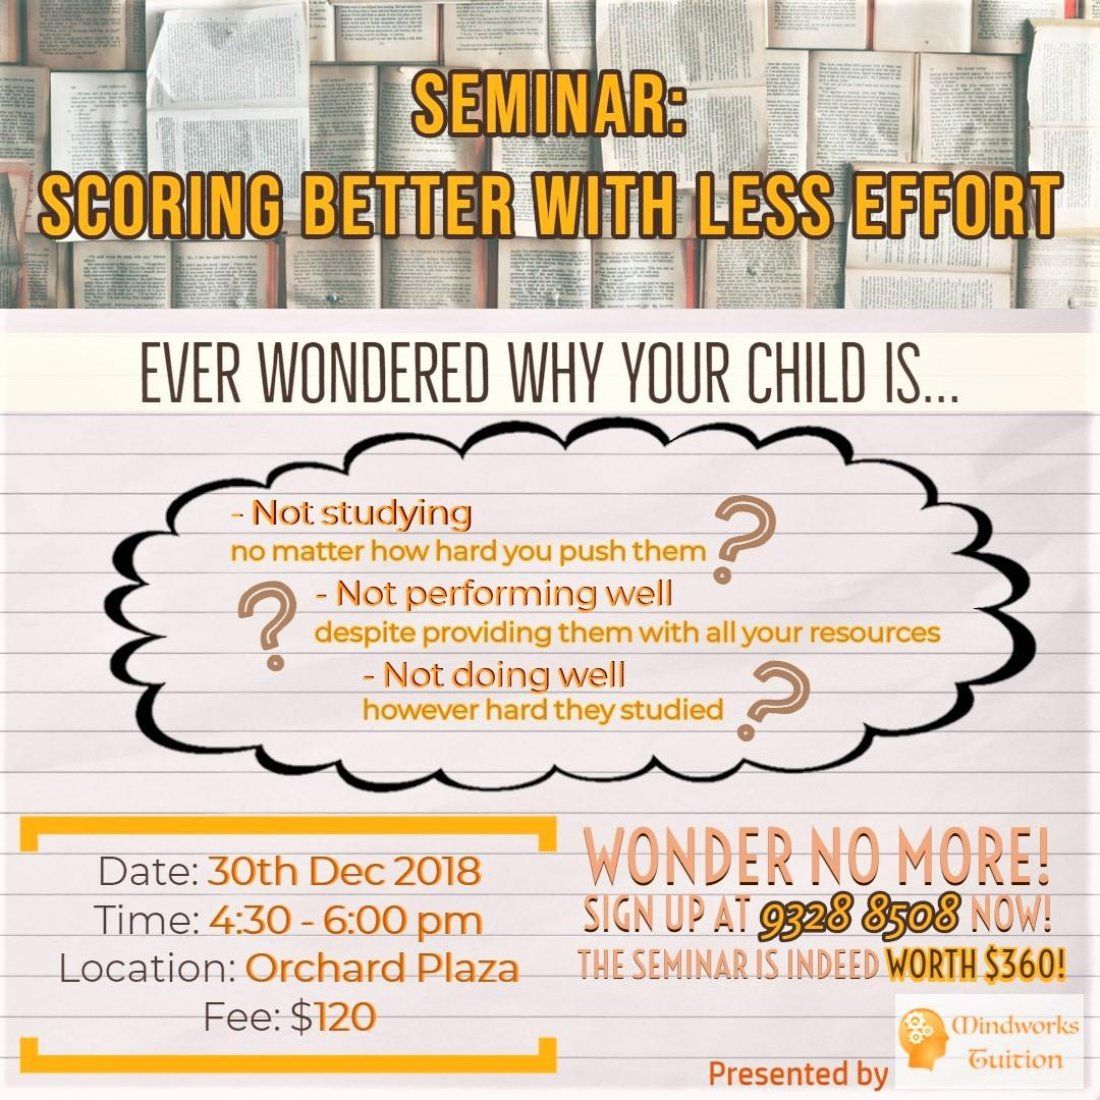 SEMINAR Scoring Better With Less Effort